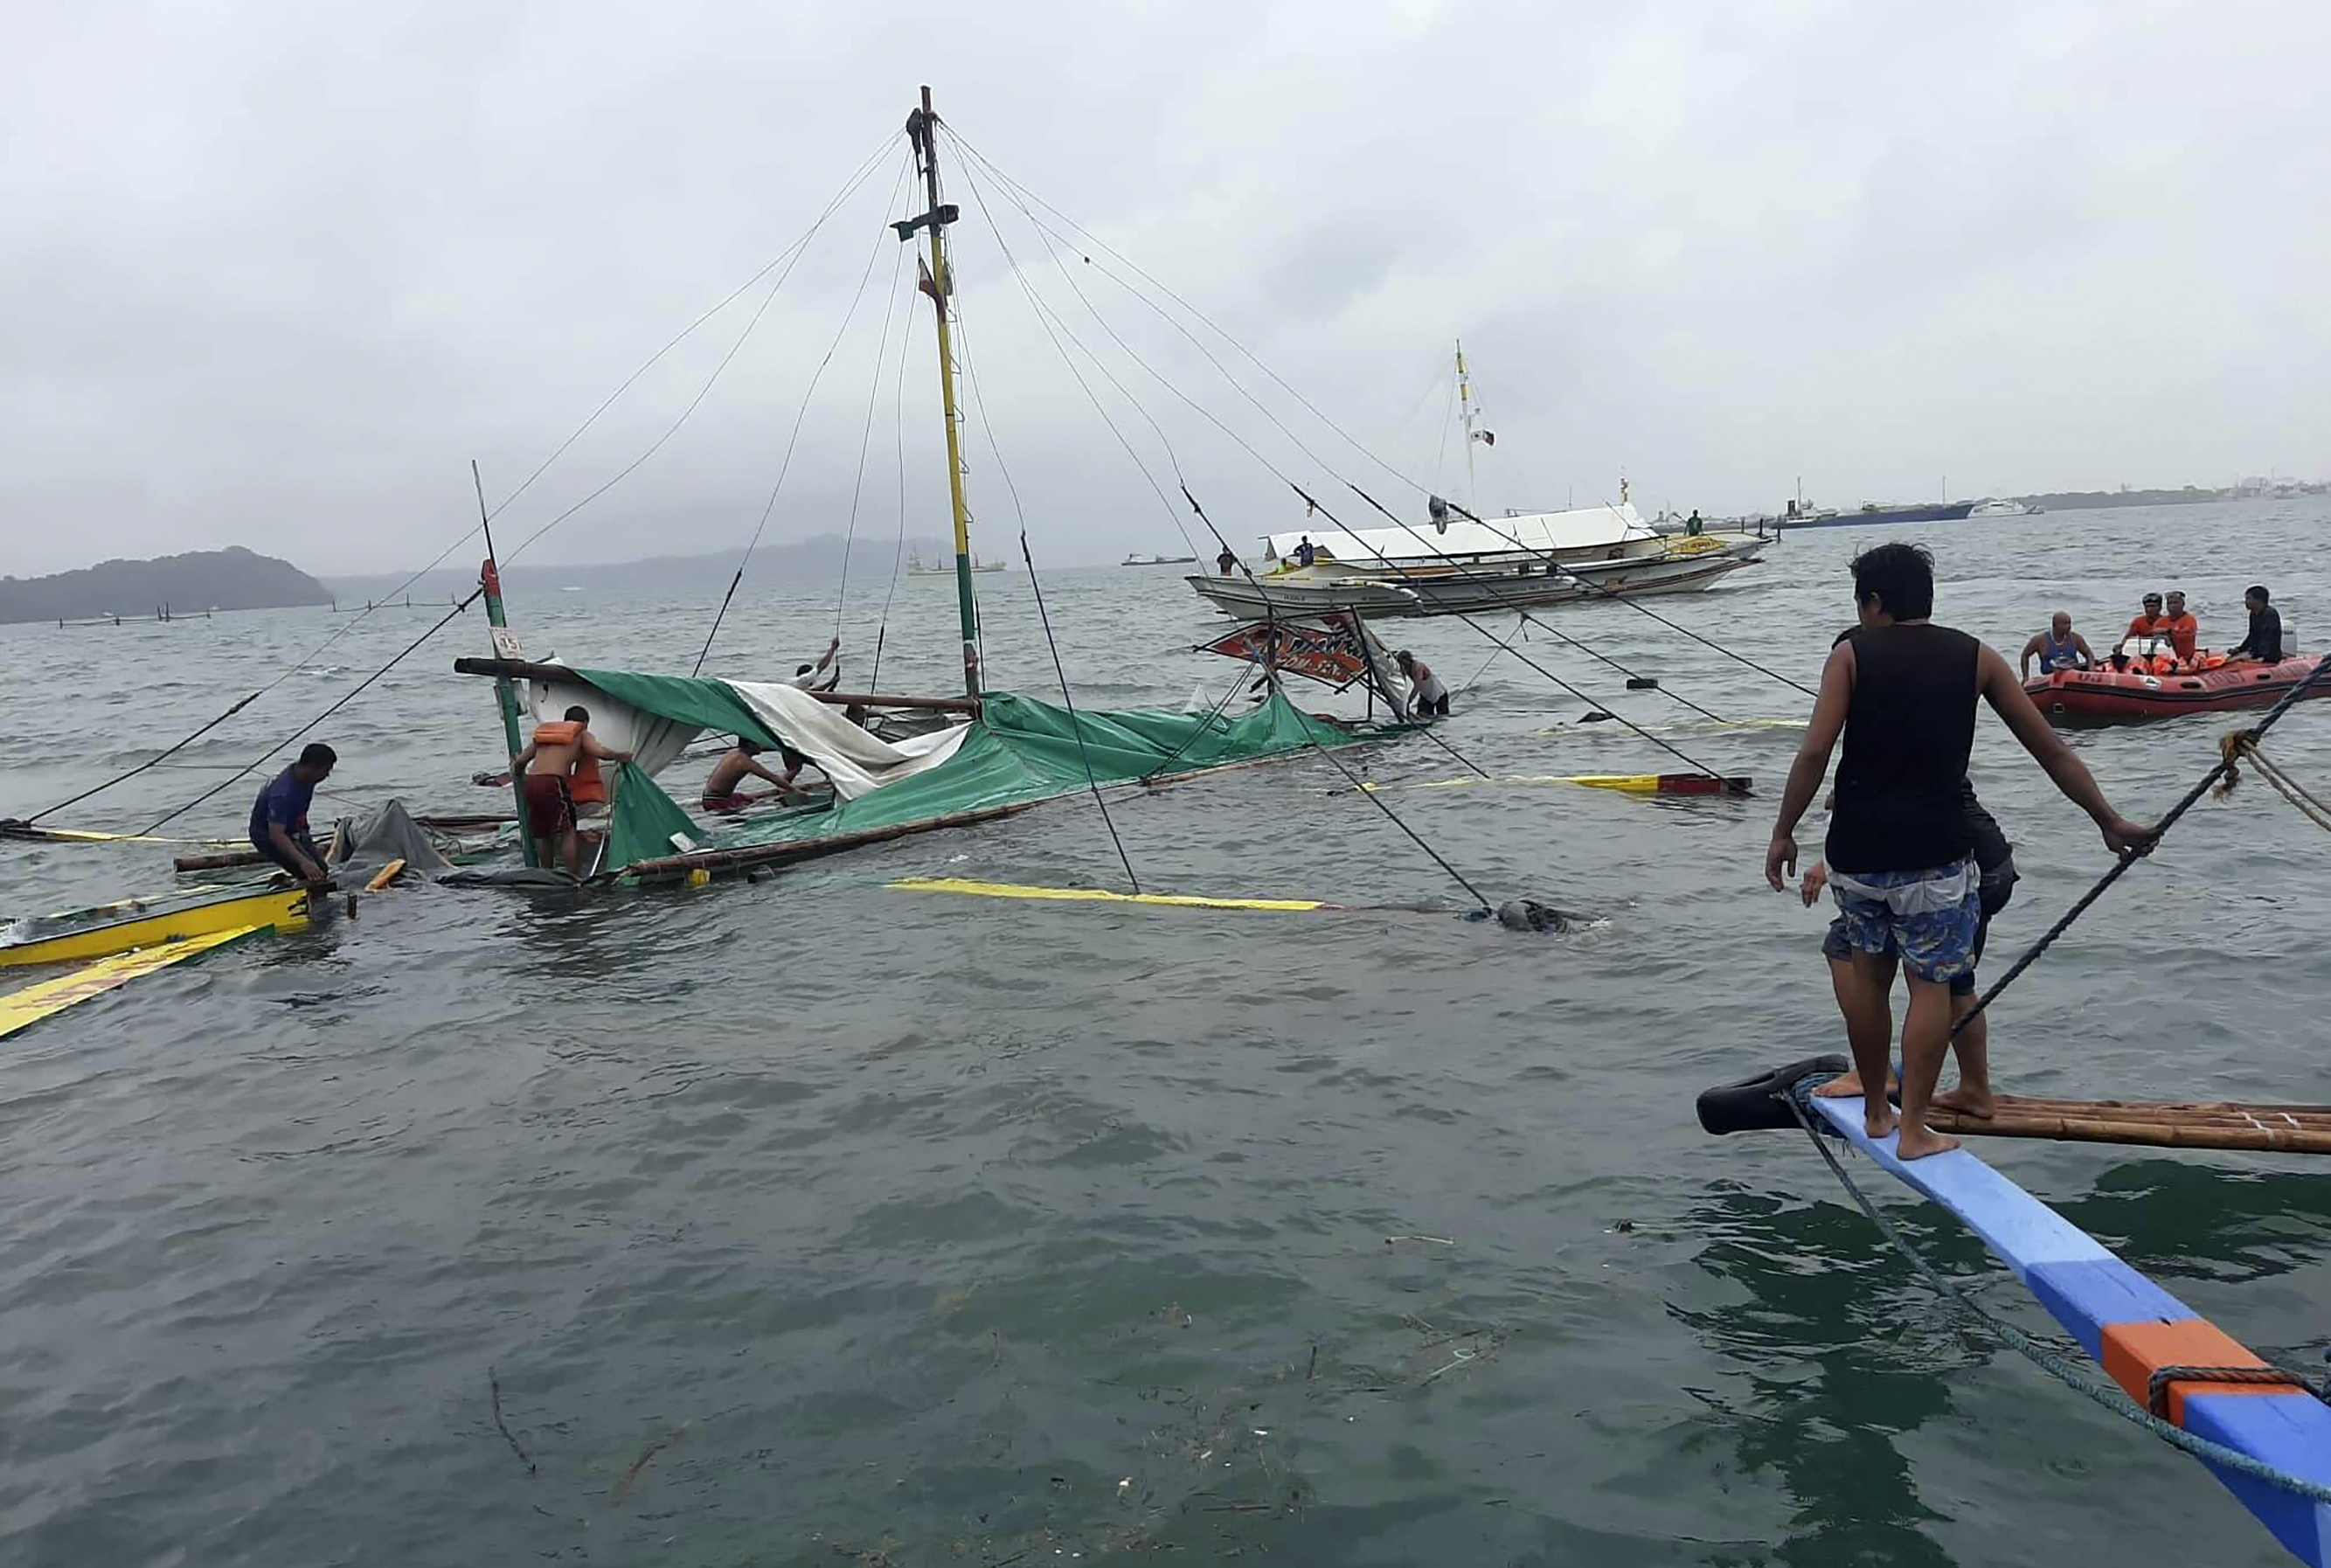 7 dead, 31 rescued after boats capsize in Philippines